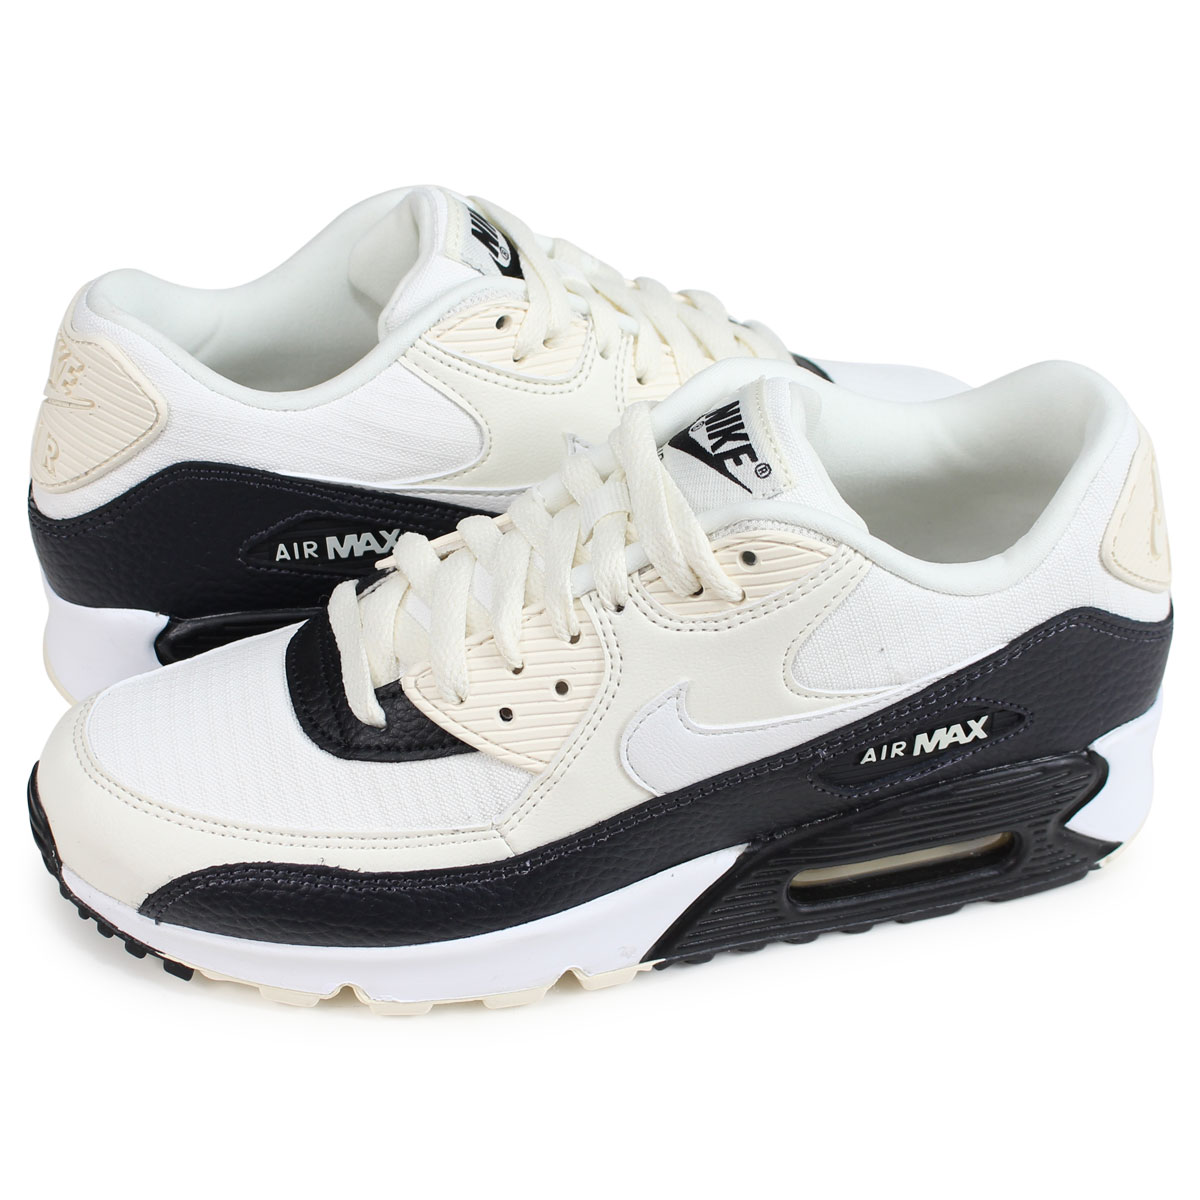 outlet store 8f87e cafd0 Nike NIKE Air Max 90 sneakers Ladys men WMNS AIR MAX 90 ivory 325,213-138  load planned Shinnyu load in reservation product 122 containing 191